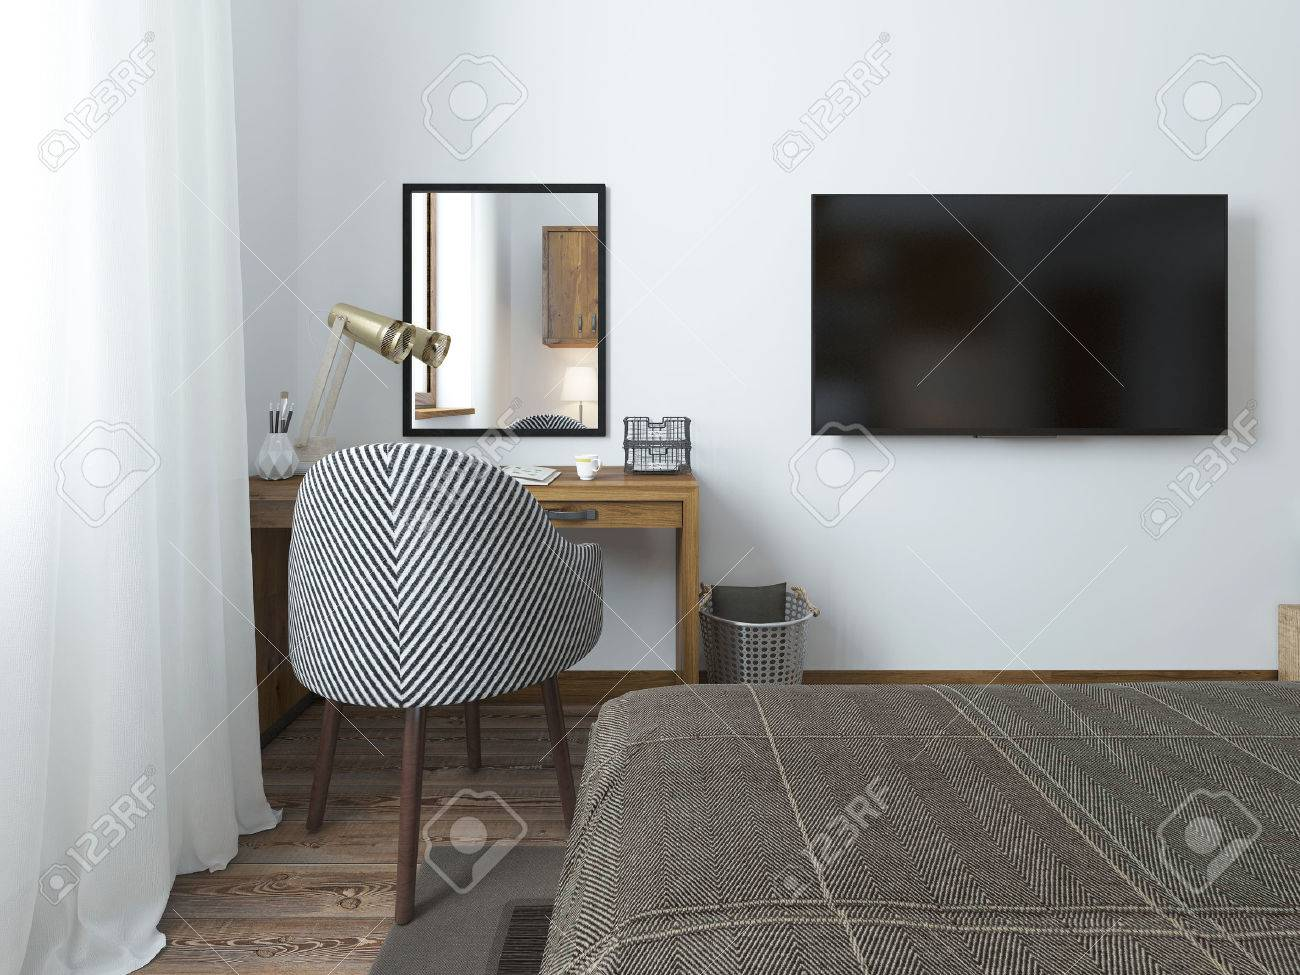 Schlafzimmer Tv Wand Stock Photo